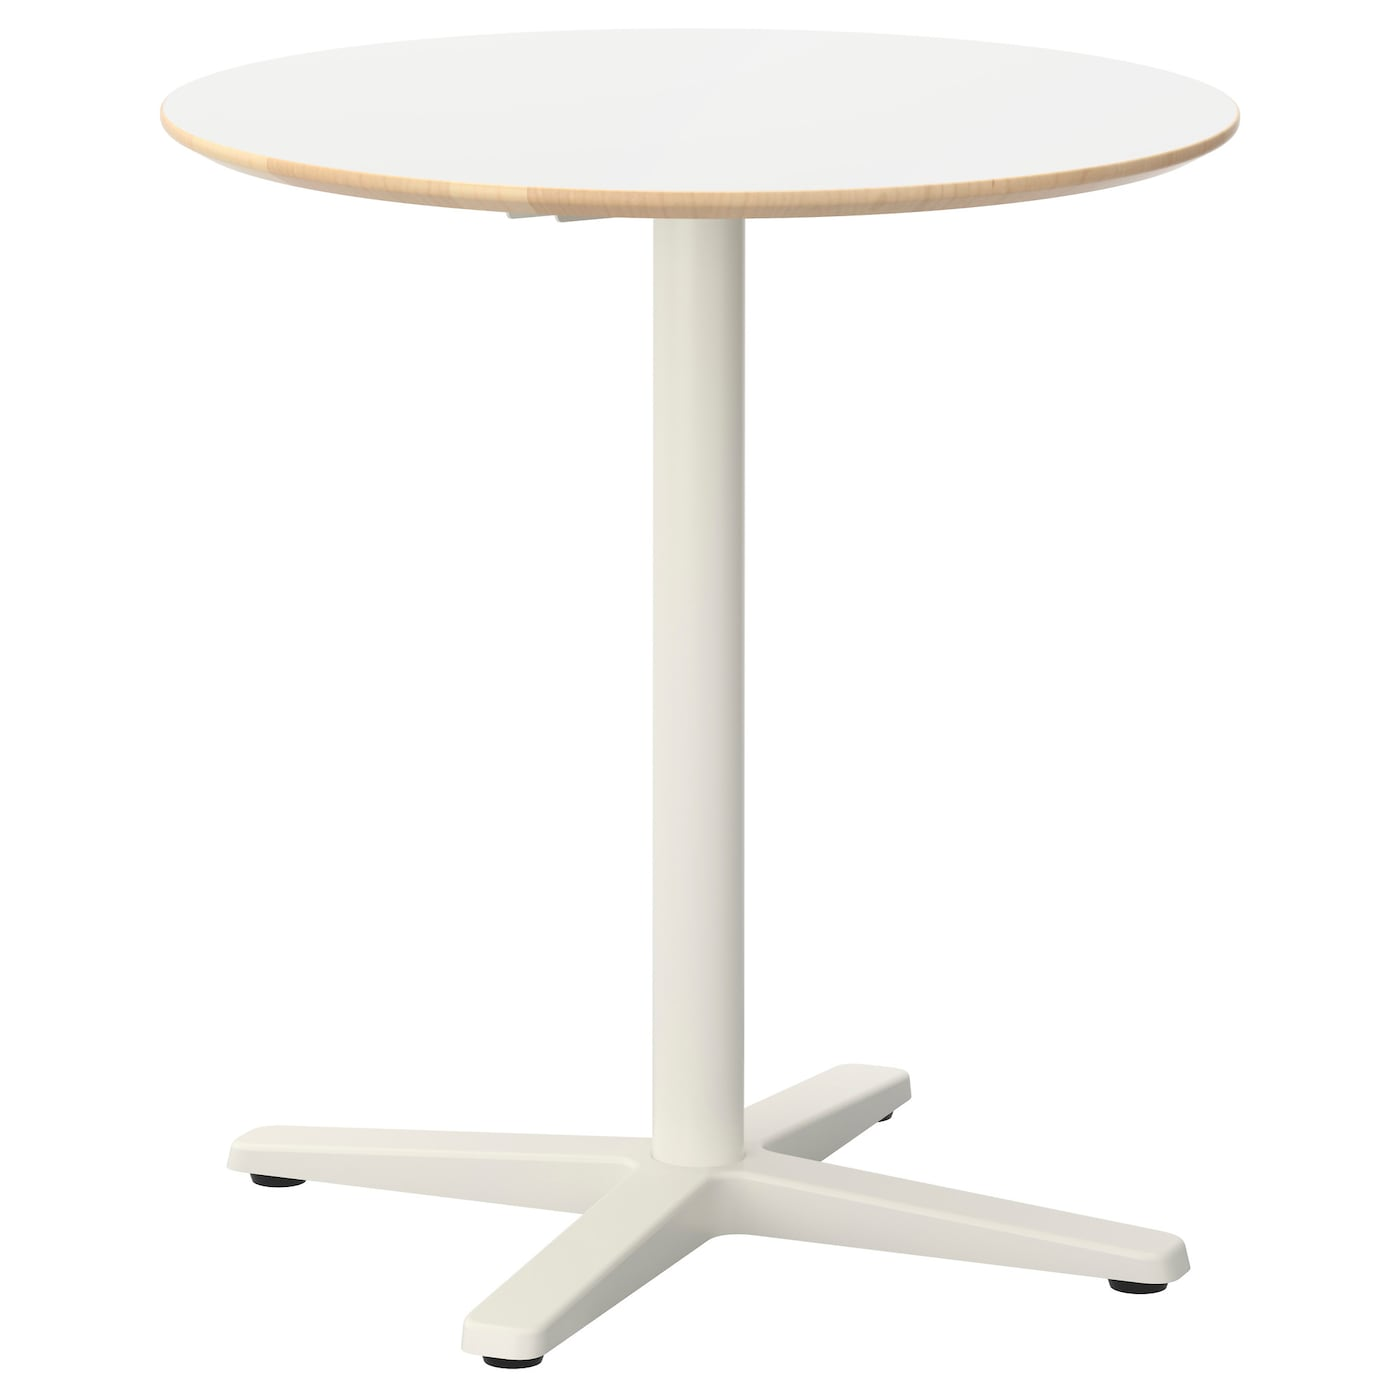 Delightful IKEA BILLSTA Table Durable And Hard Wearing; Meets The Requirements On  Furniture For Public